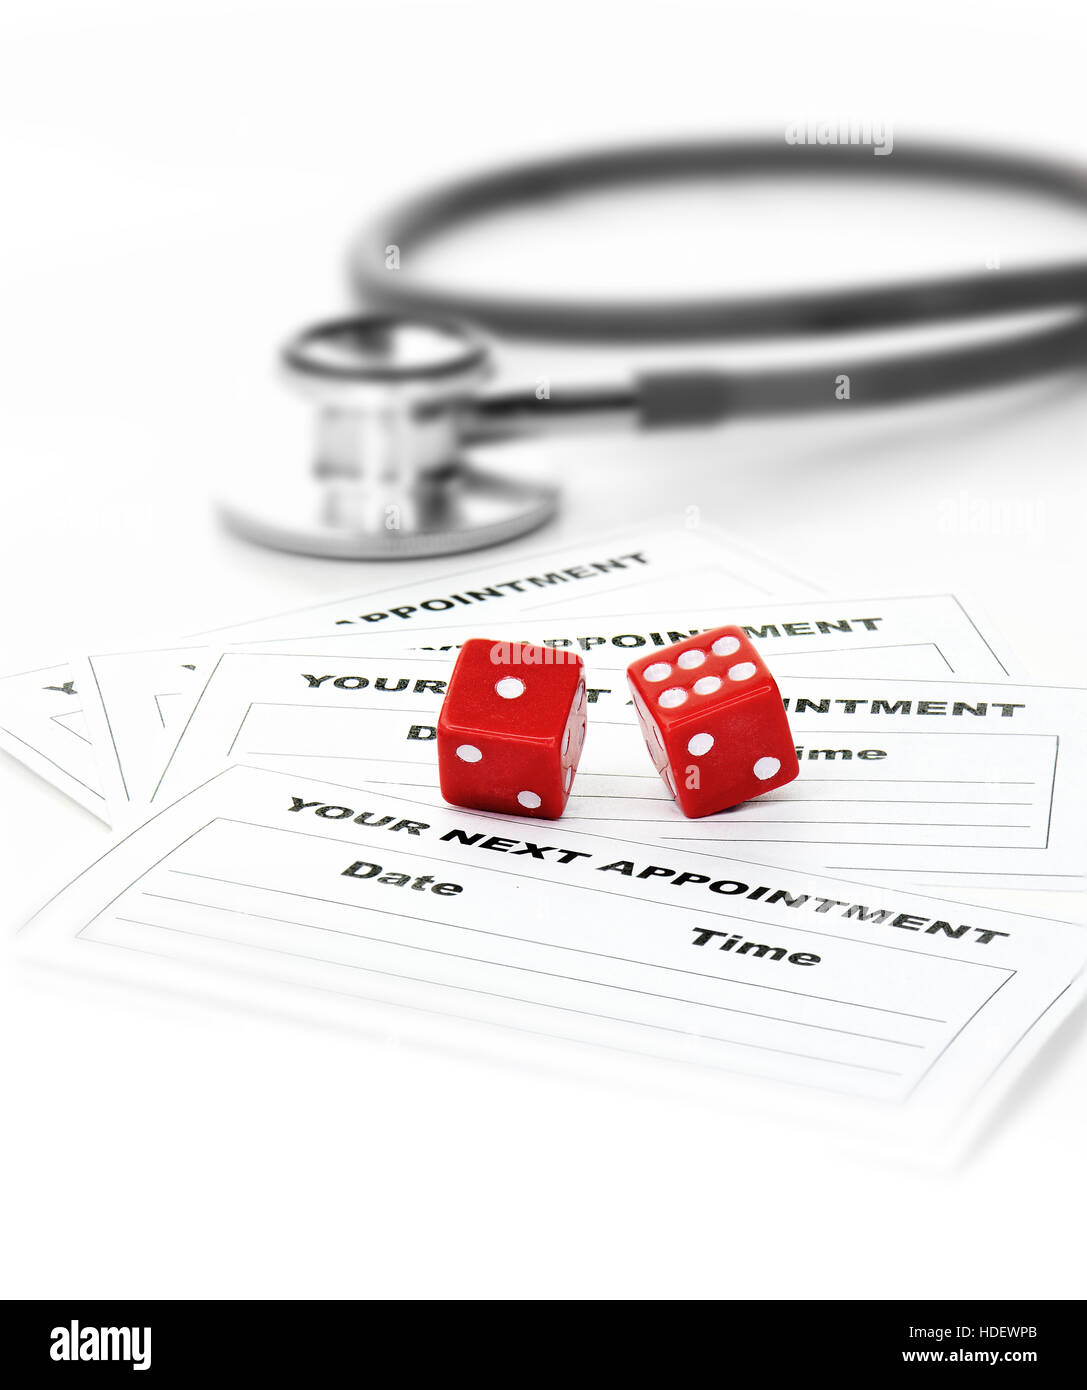 Two Red Dice Stethoscope And Blank Appointment Cards Against A Light Background With Copy Space Concept Image For Postcode Lottery Health Care Rece